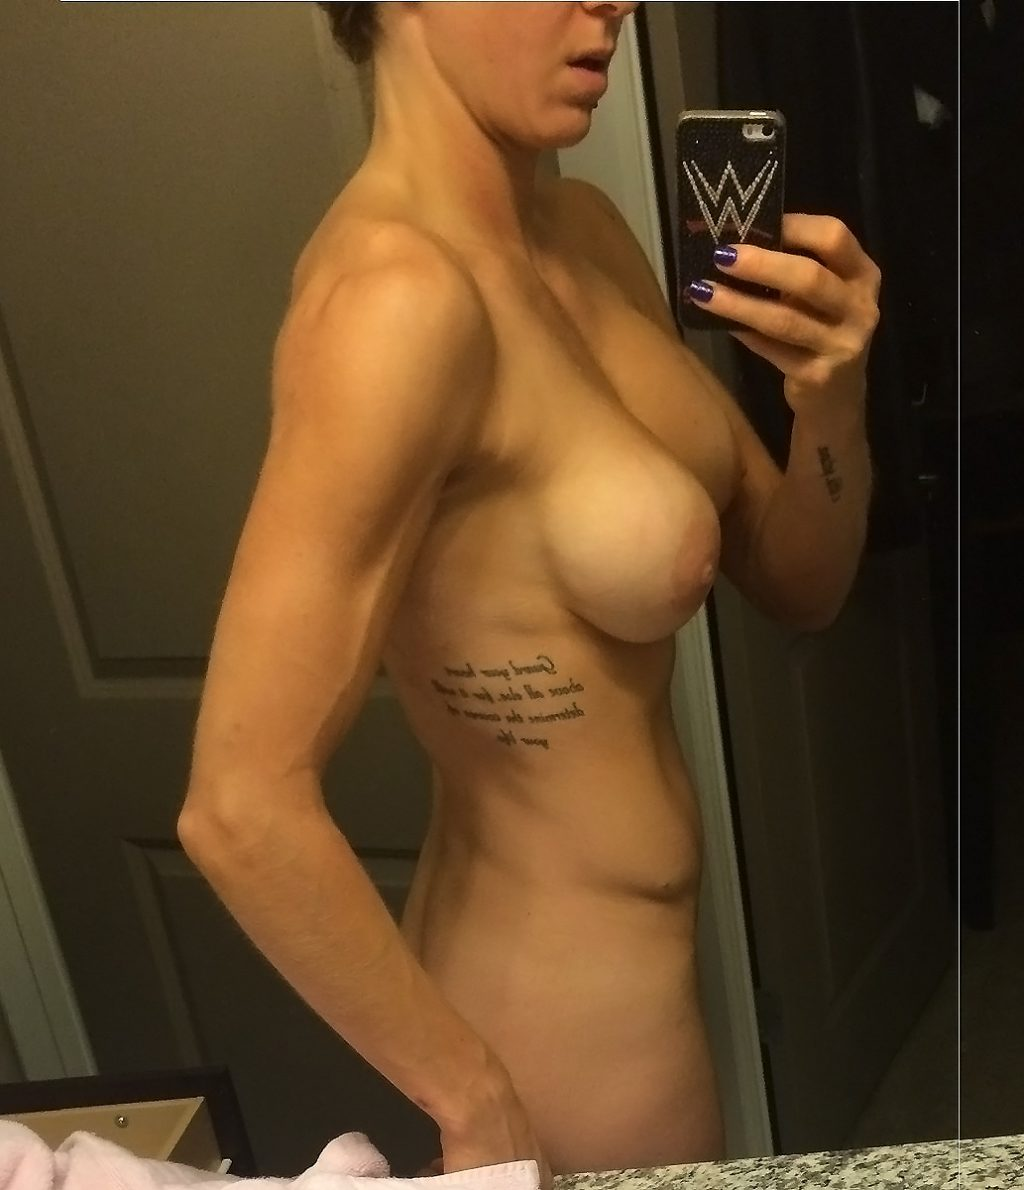 wwe diva ashley tits naked